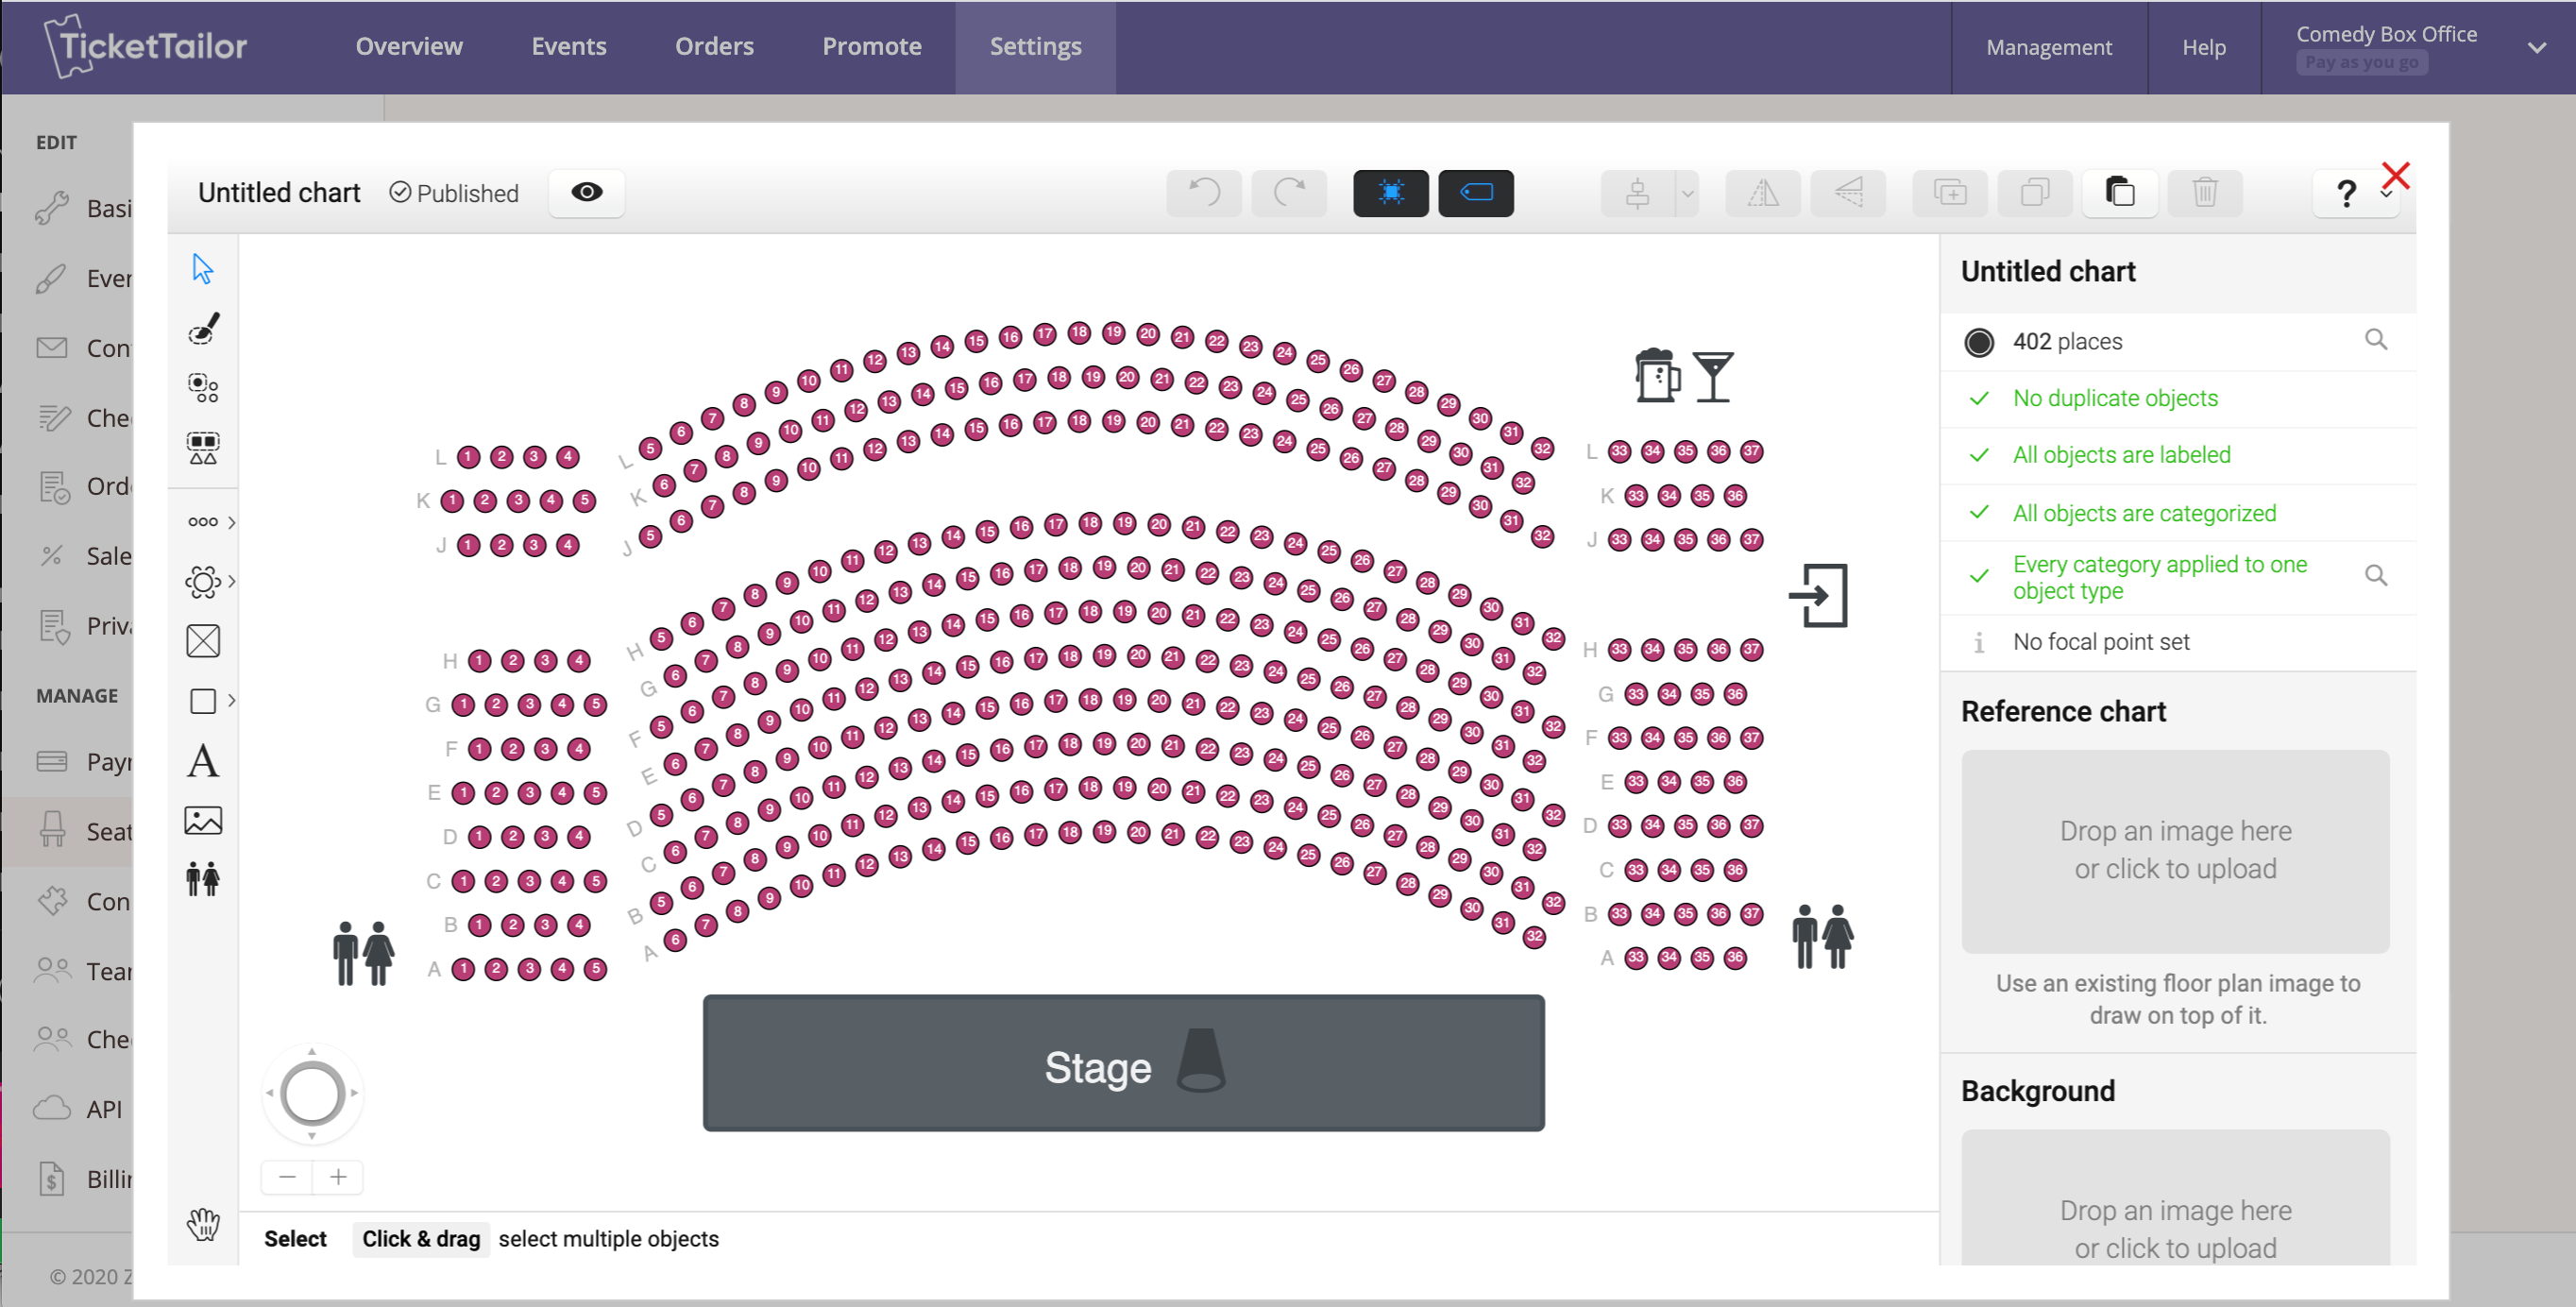 Create seating charts in minutes. From dinner galas, to the theatres and stadiums. Automate social distancing rules, avoid orphan seats and add images to bring seating chart to life.